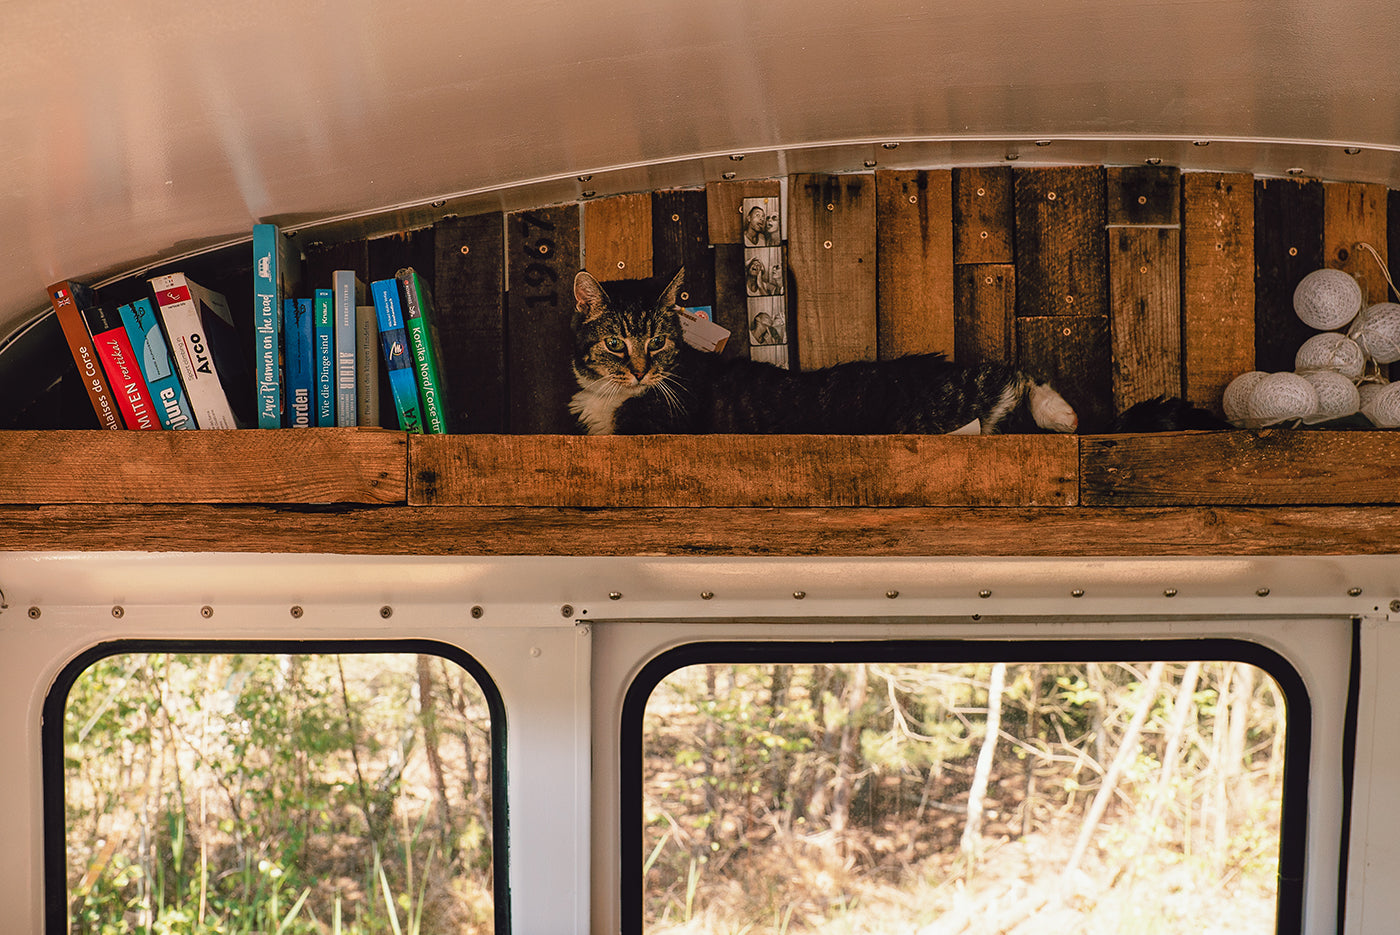 A cat resting in a custom built shelf above a window of the bus. (Photo: Kai Branss)